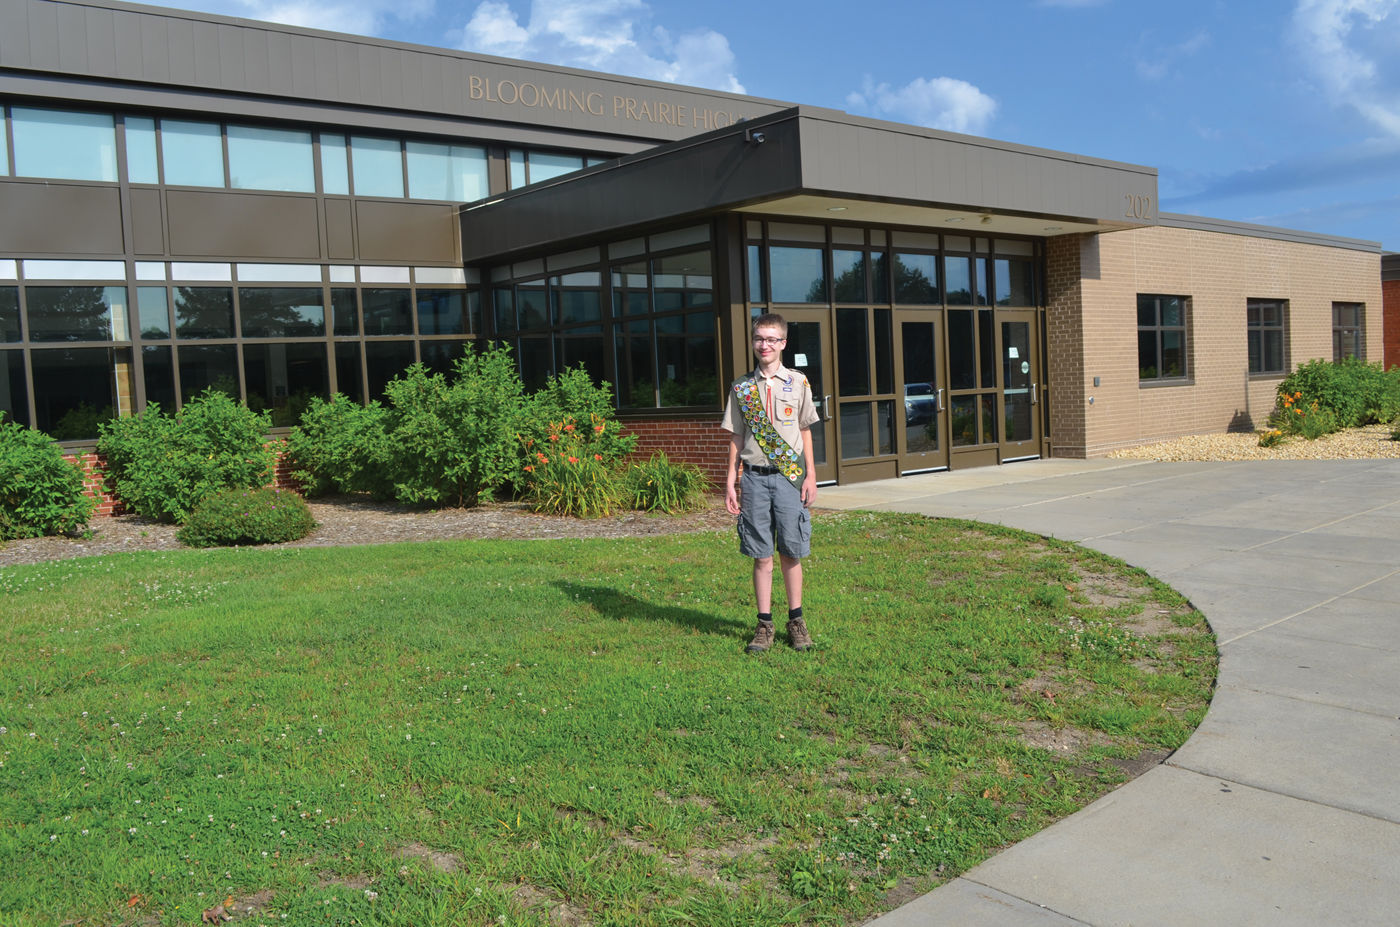 Boy Scout DJ Stender Will Build A Patio In Front Of Blooming Prairie High  School U2014 On The Grassy Area Heu0027s Standing On In This Photo U2014 As His Eagle  Scout ...